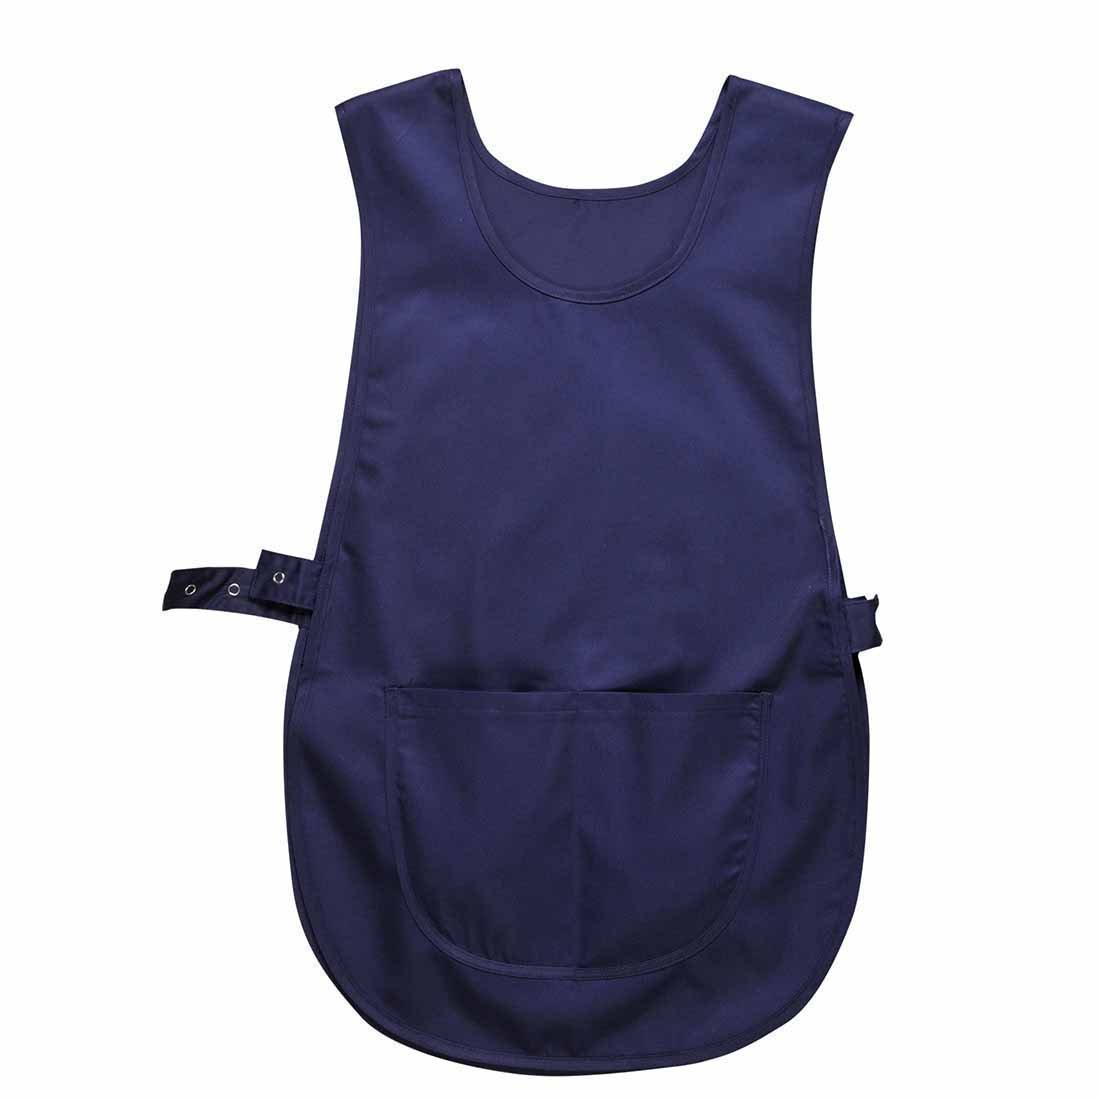 PORTWEST S843 Tabard with Pocket Navy S843NA-RS/M